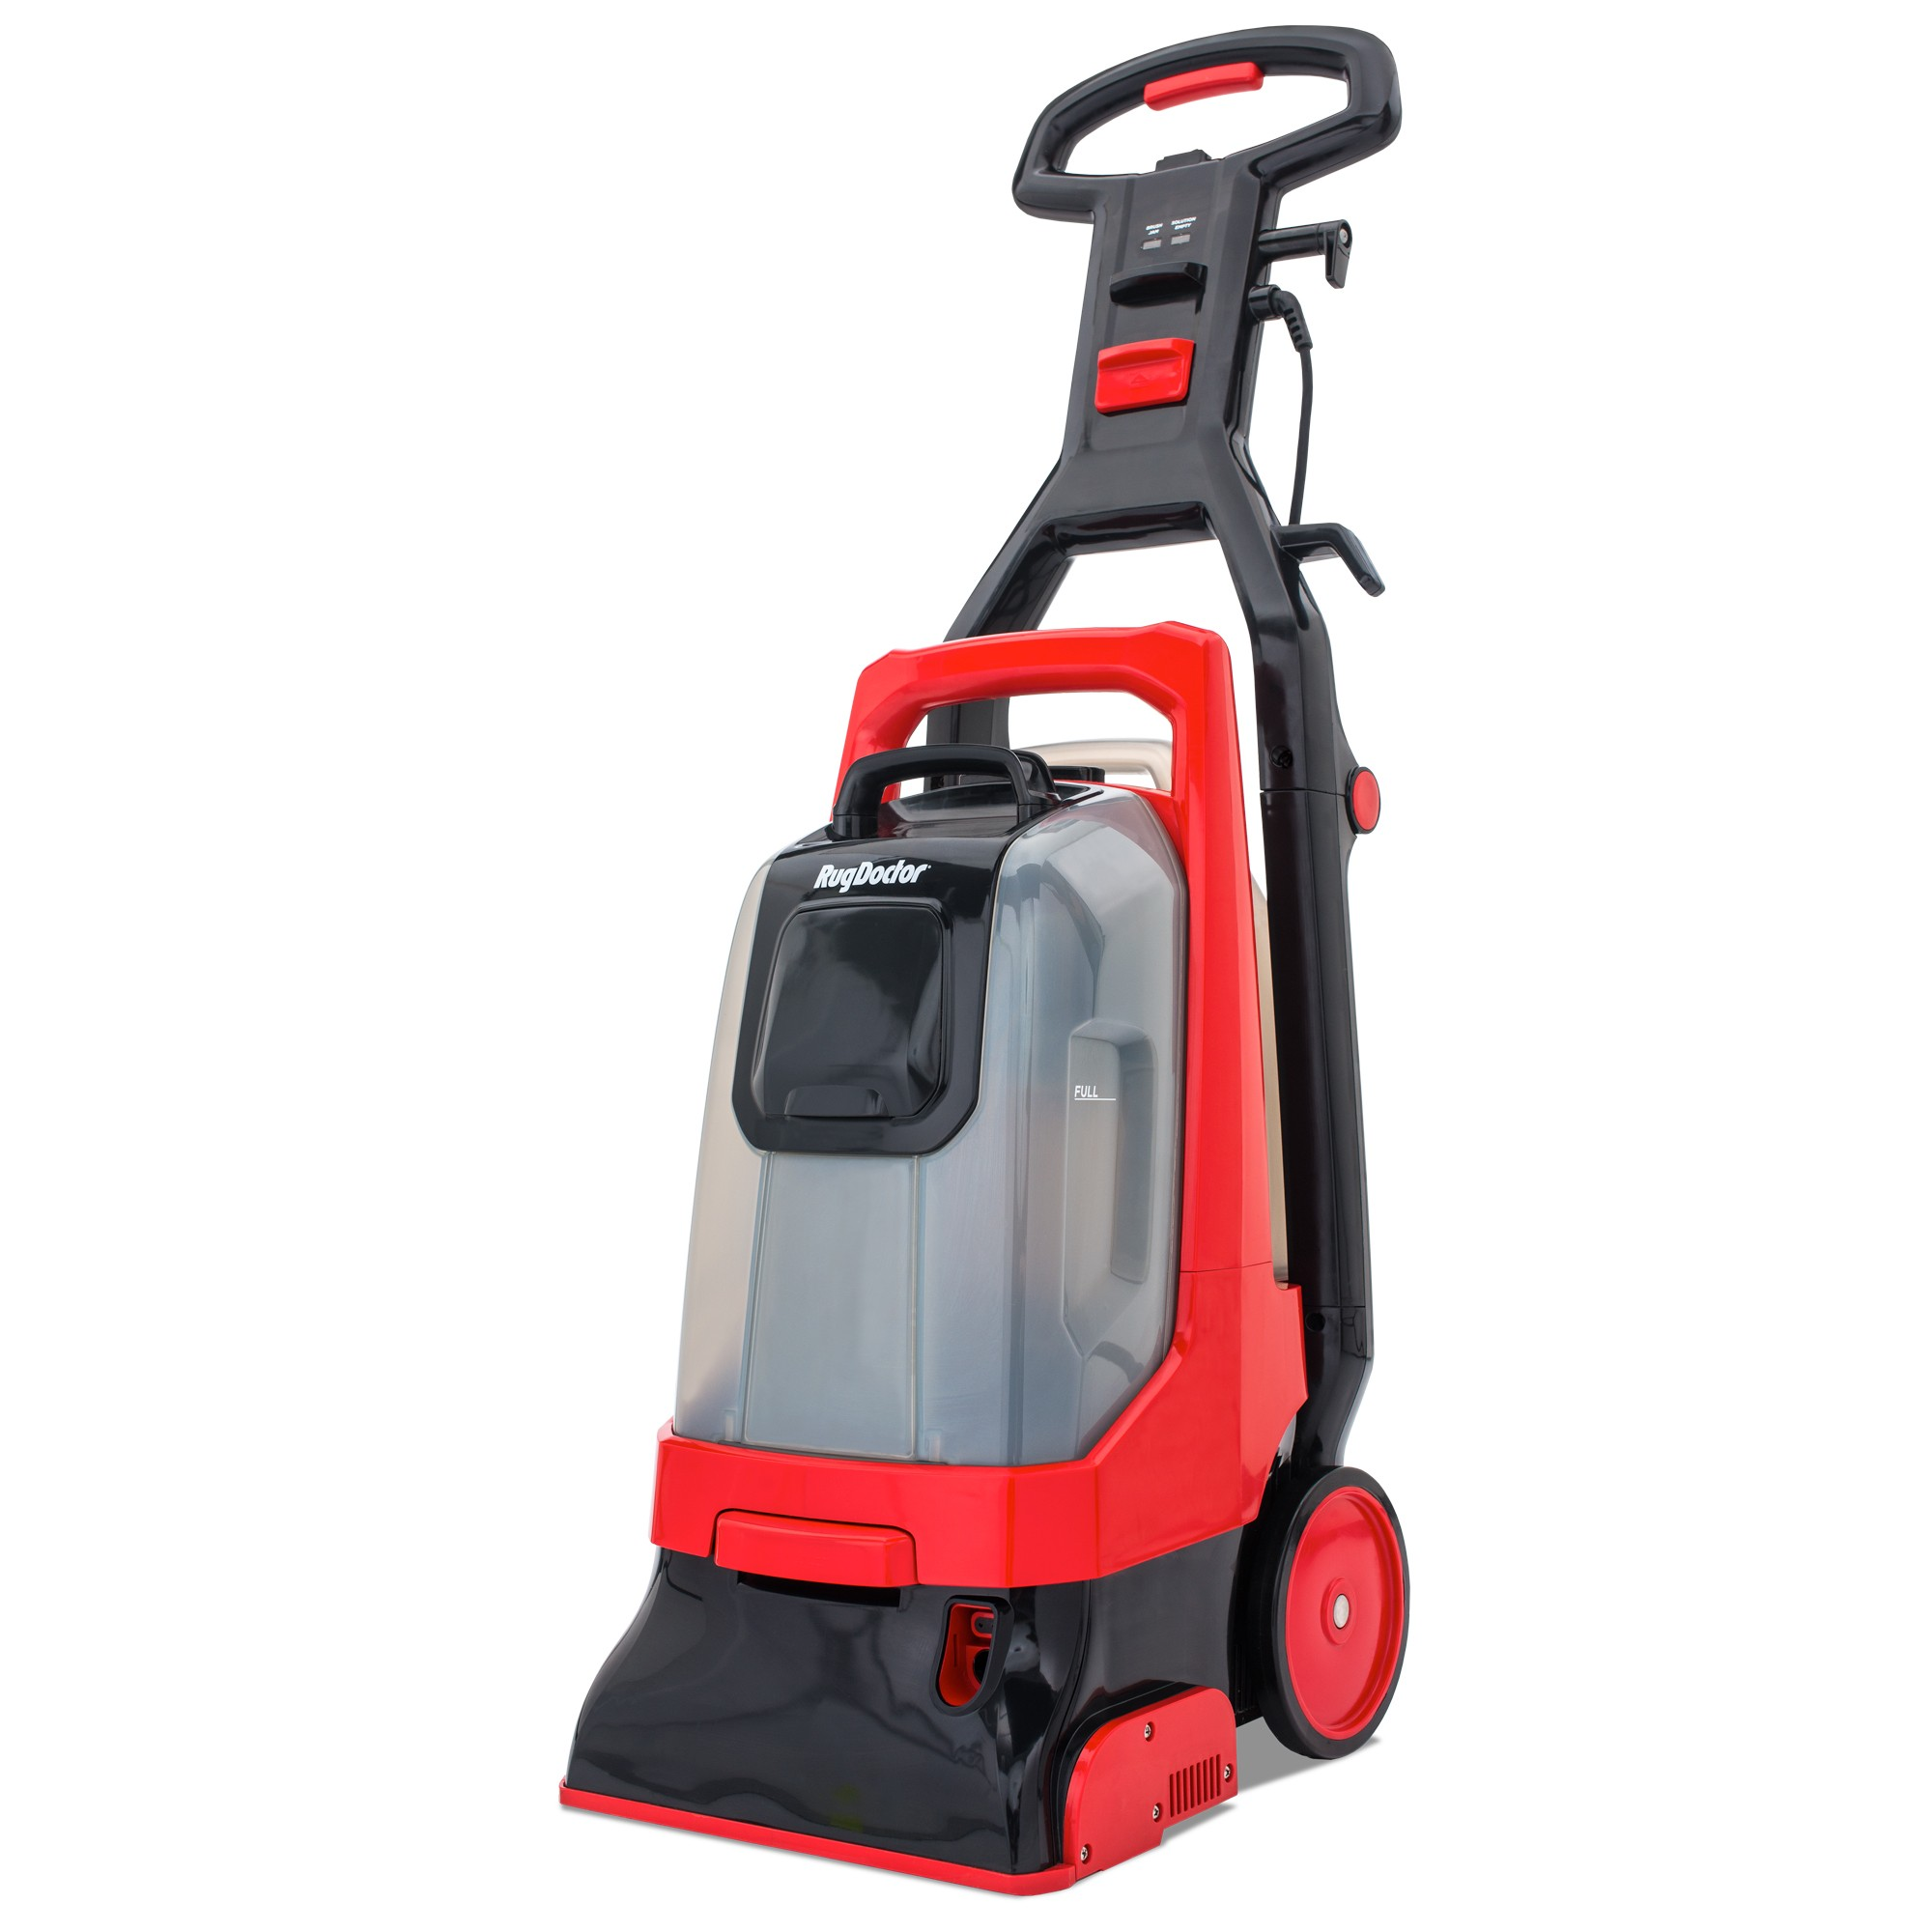 Rug Doctor Pro Deep Carpet Cleaner Cleaning Machines